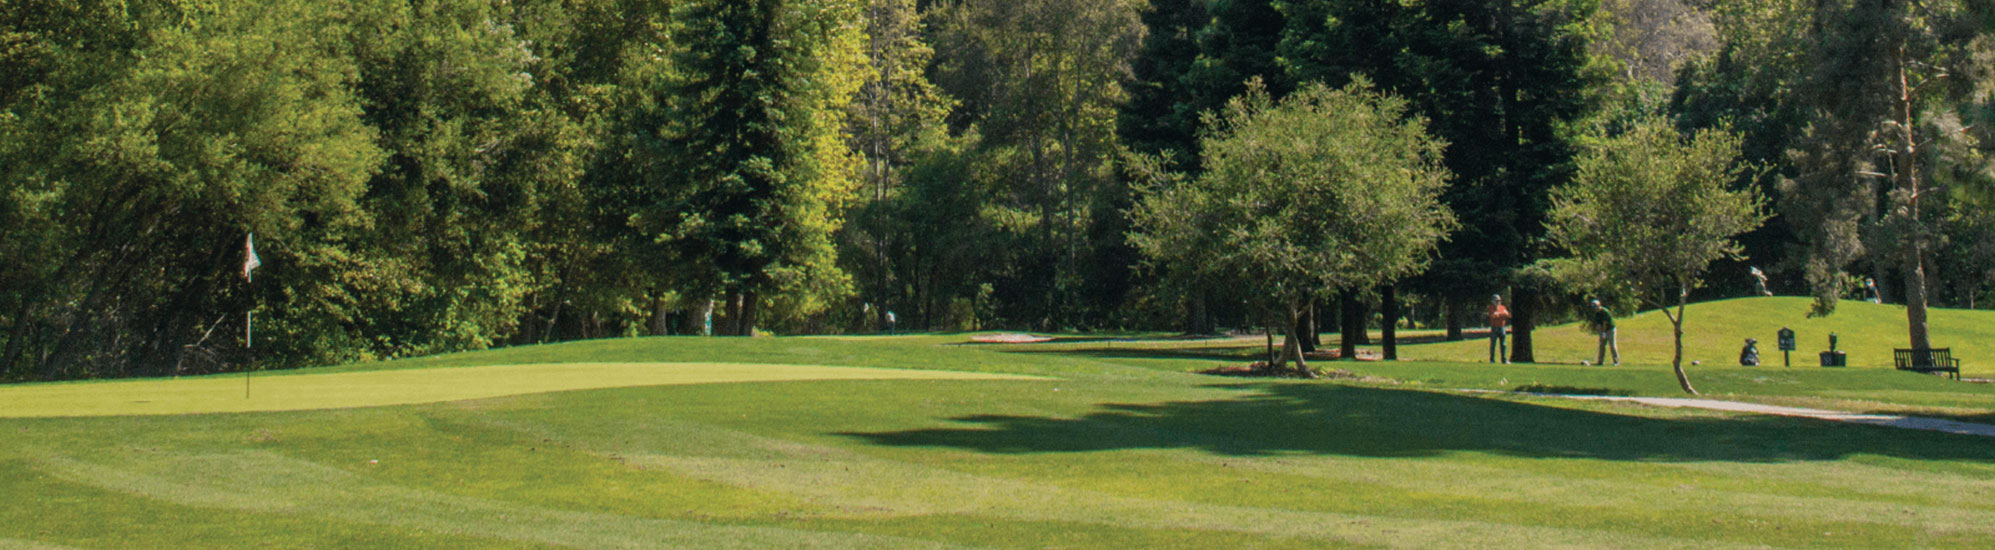 Deep Cliff Golf Course - Cupertino, CA